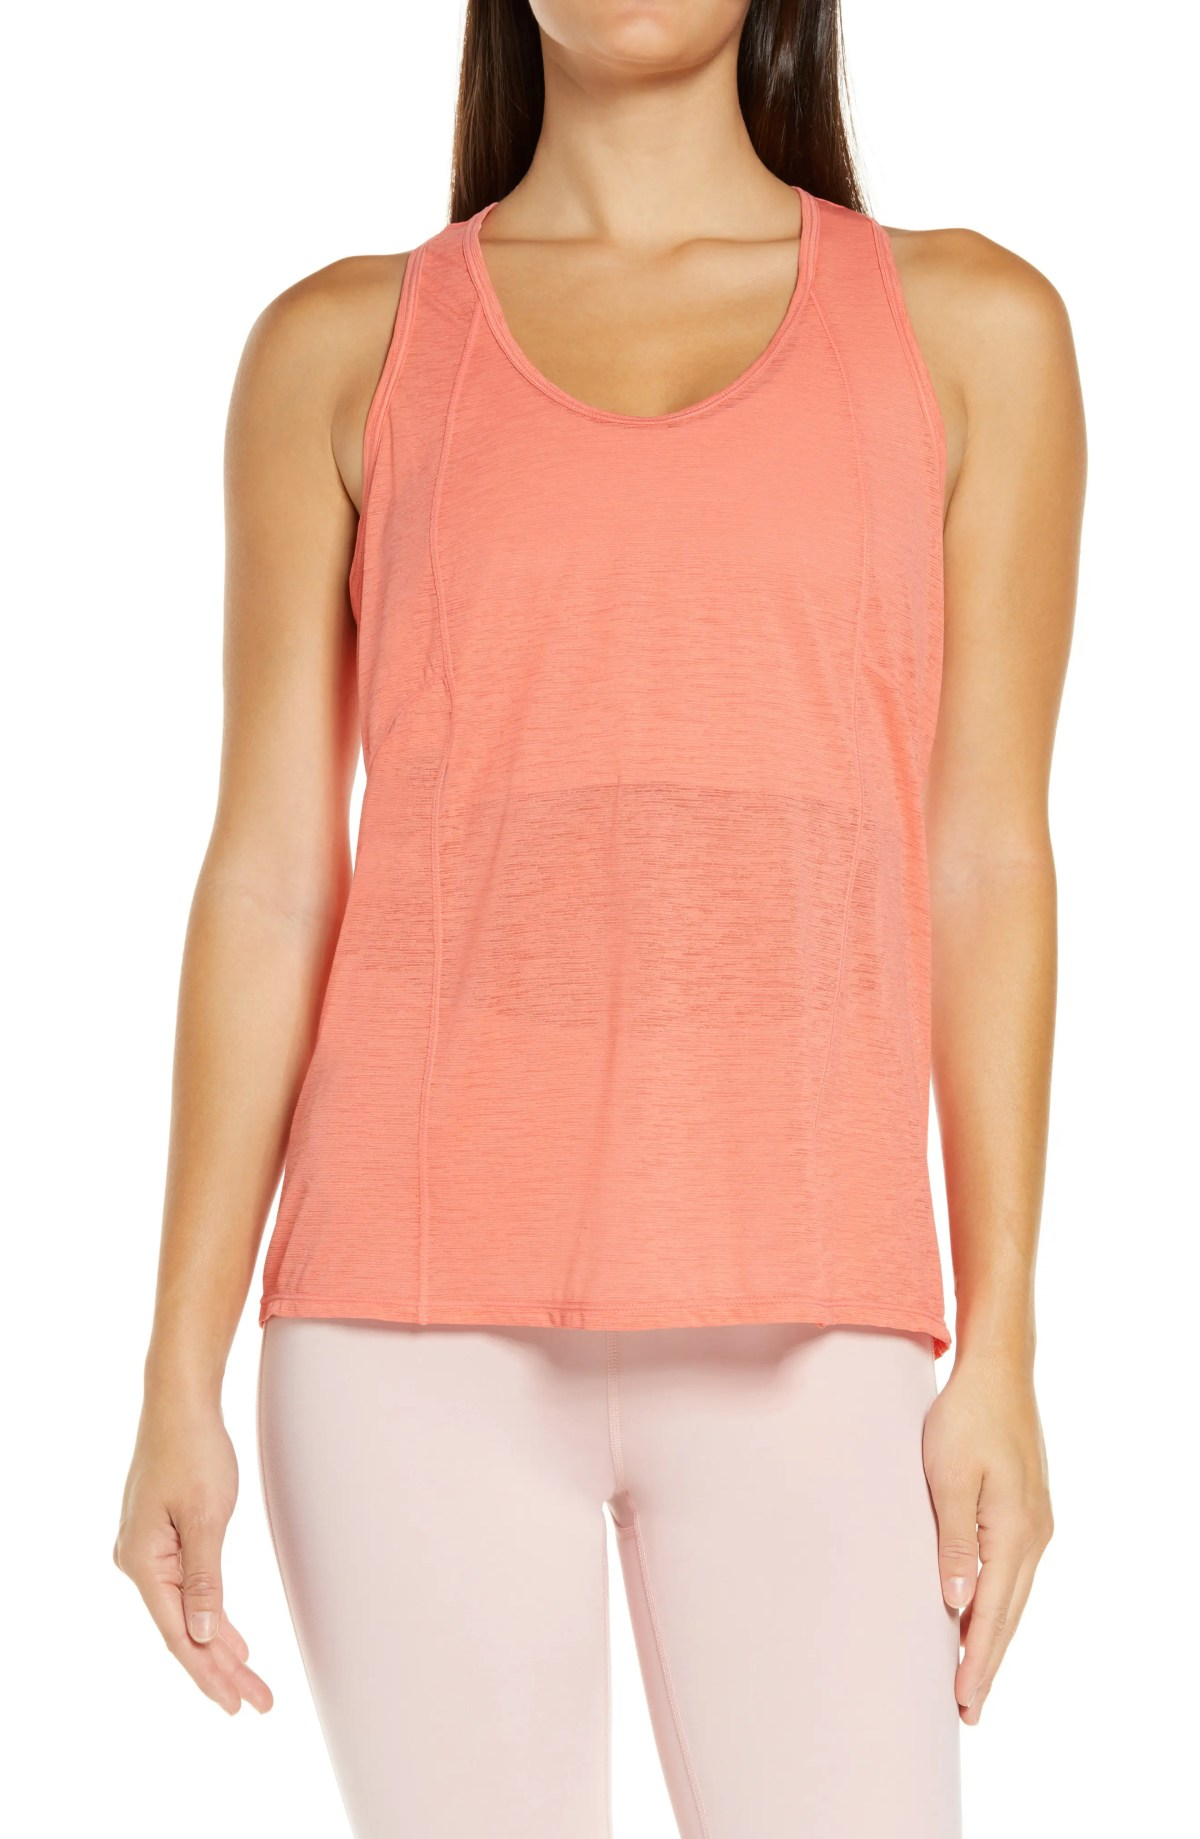 ZELLA Swing It Breezy Tank, Main, color, CORAL ROSE